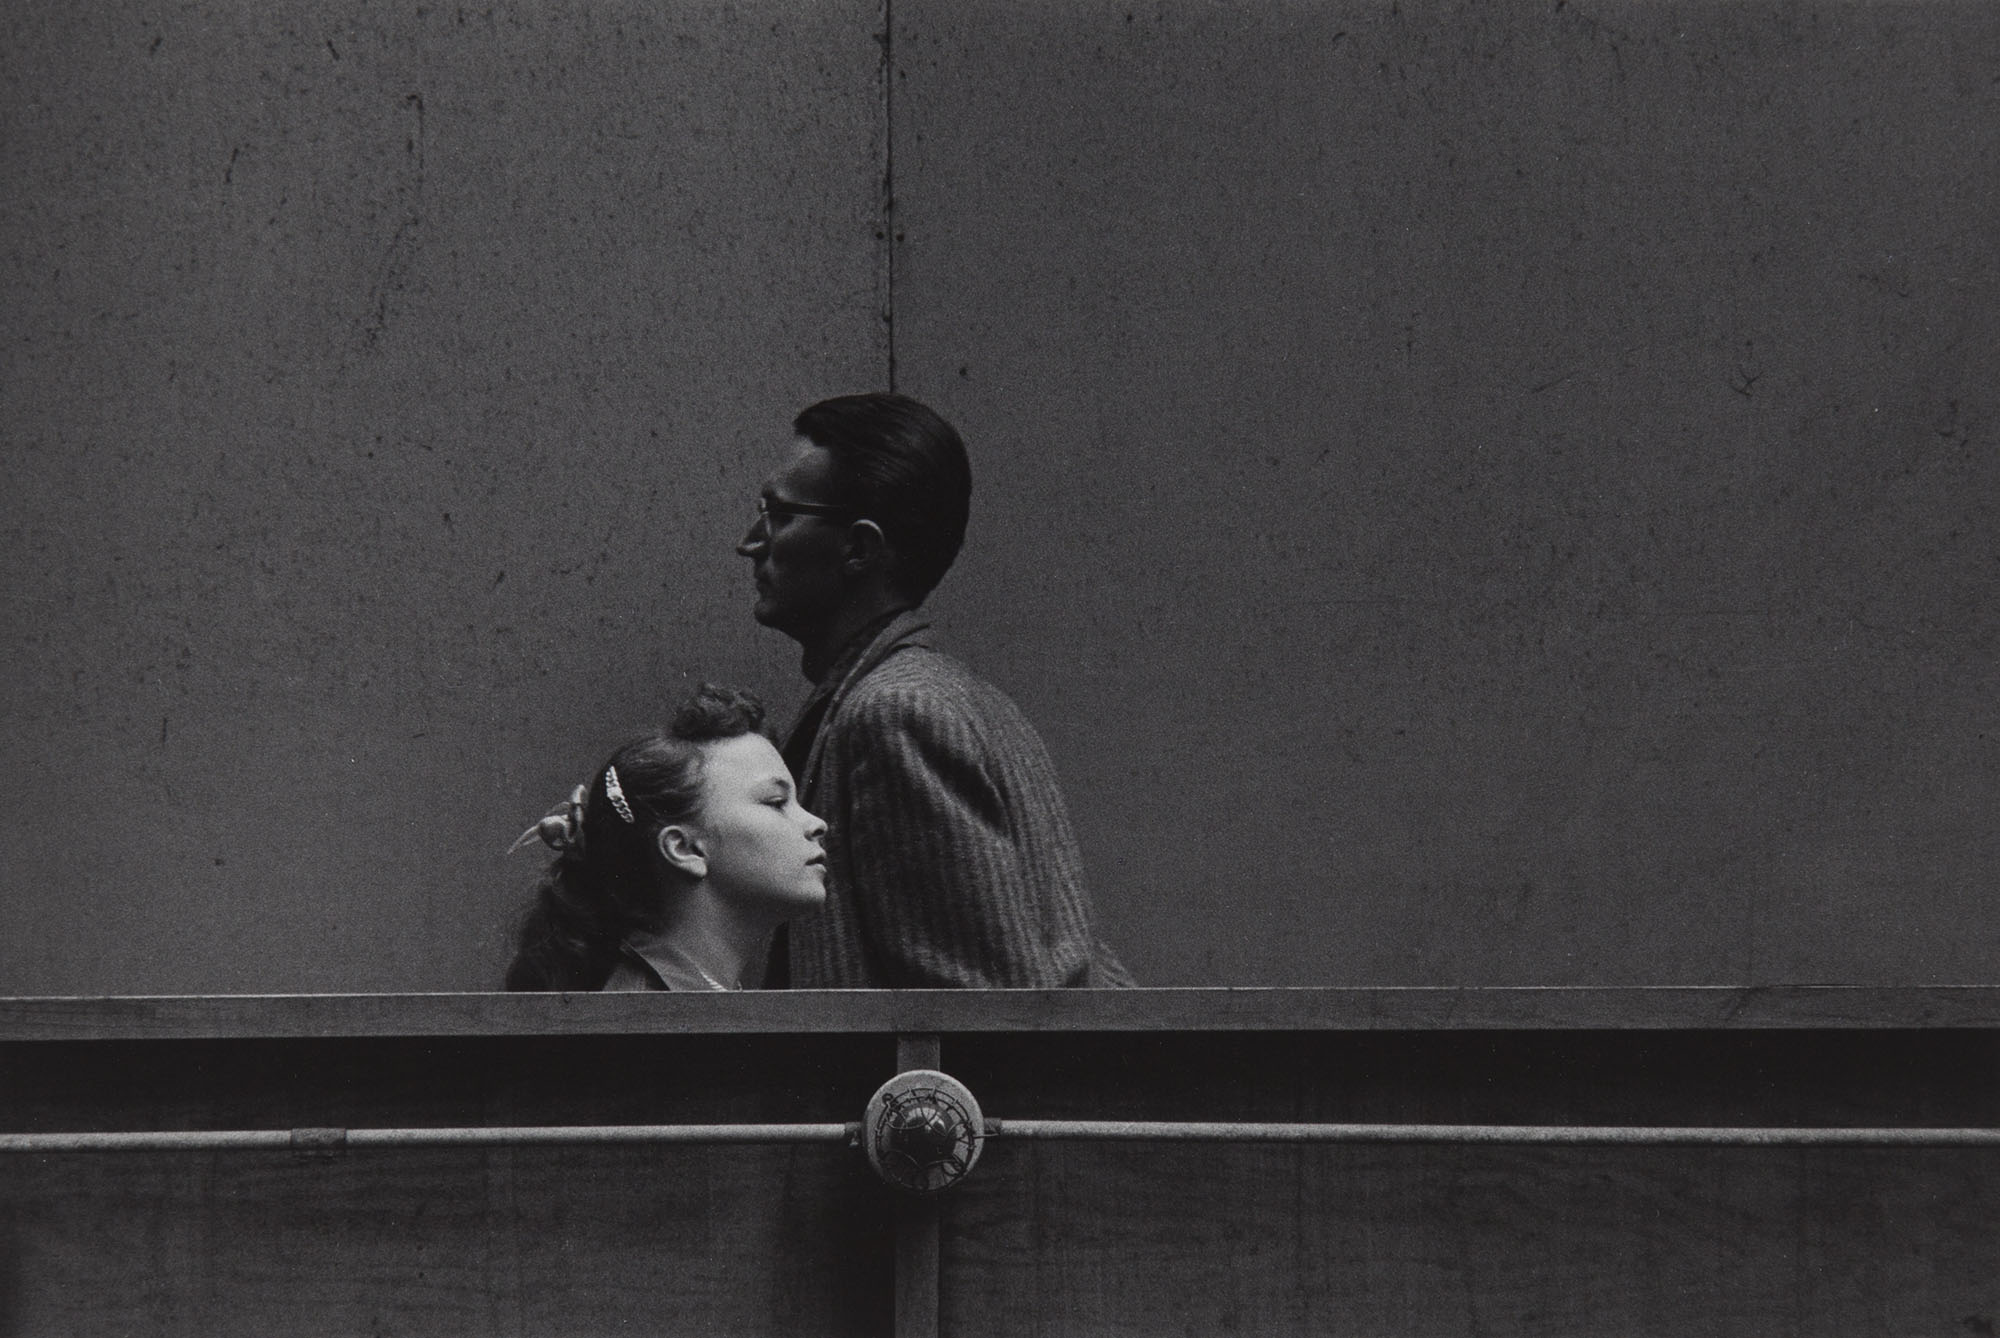 Harry Callahan, Untitled, 1960. Silver gelatin print. Collection of DePaul Art Museum, Art Endowment Fund, 2003.15